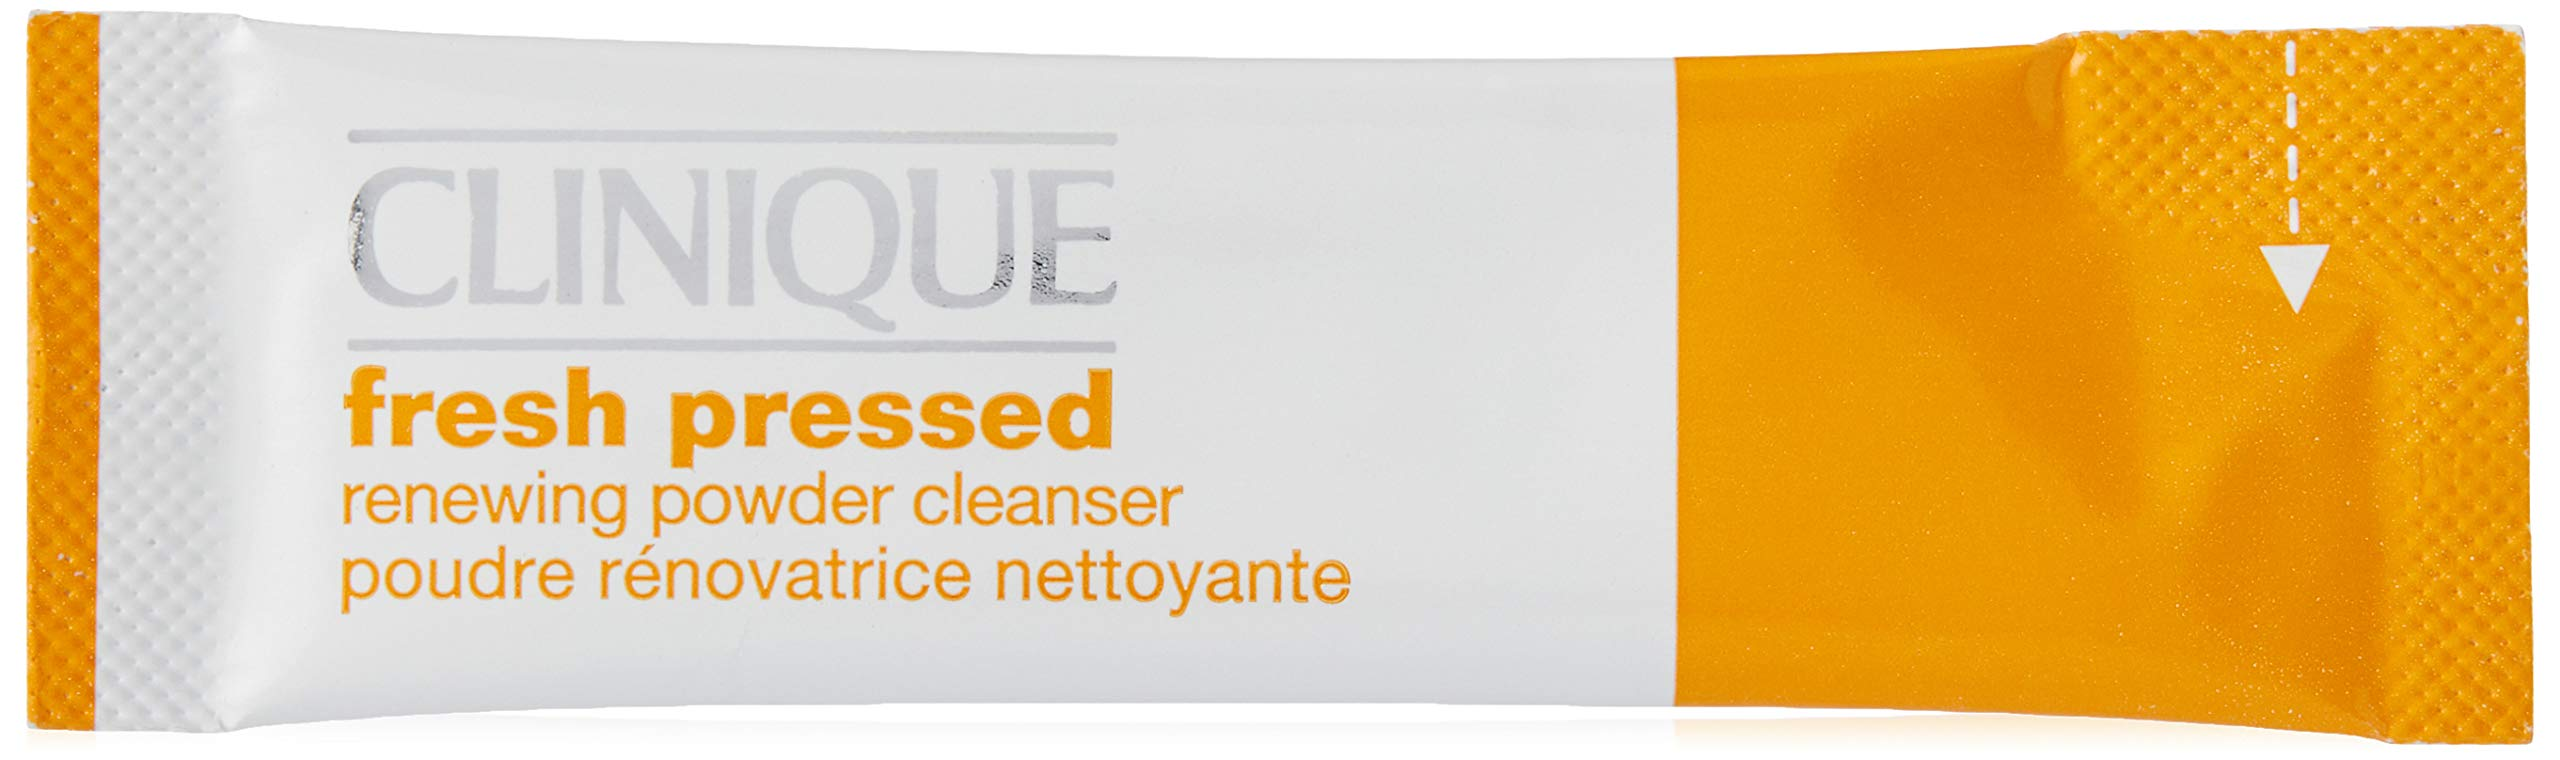 Clinique Fresh Pressed Renewing Powder Cleanser With Pure Vitamin C 5g/0.01Ounce X 28 Packets, 0.01 Ounce